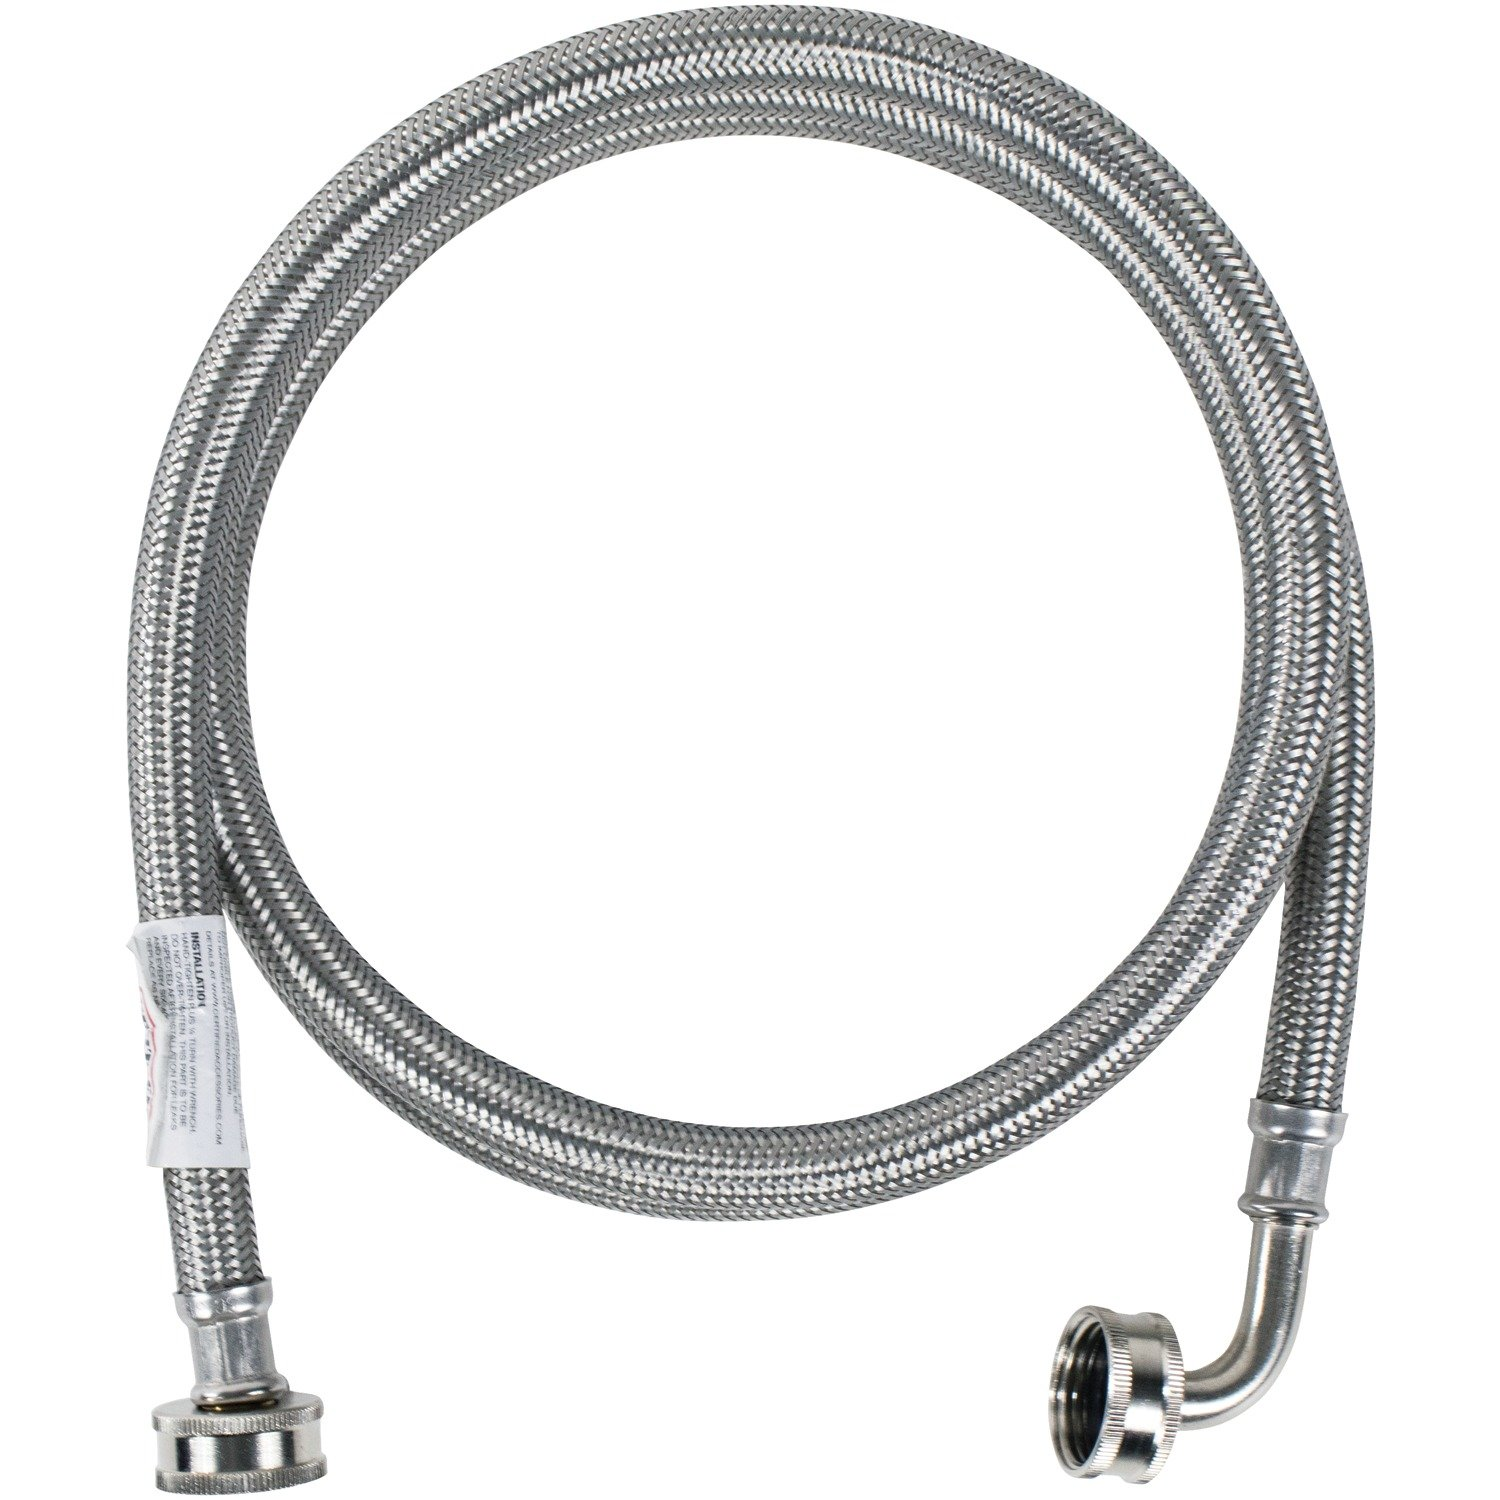 Certified Appliance Accessories WM48SSL Braided Washing Machine Hose with Elbow